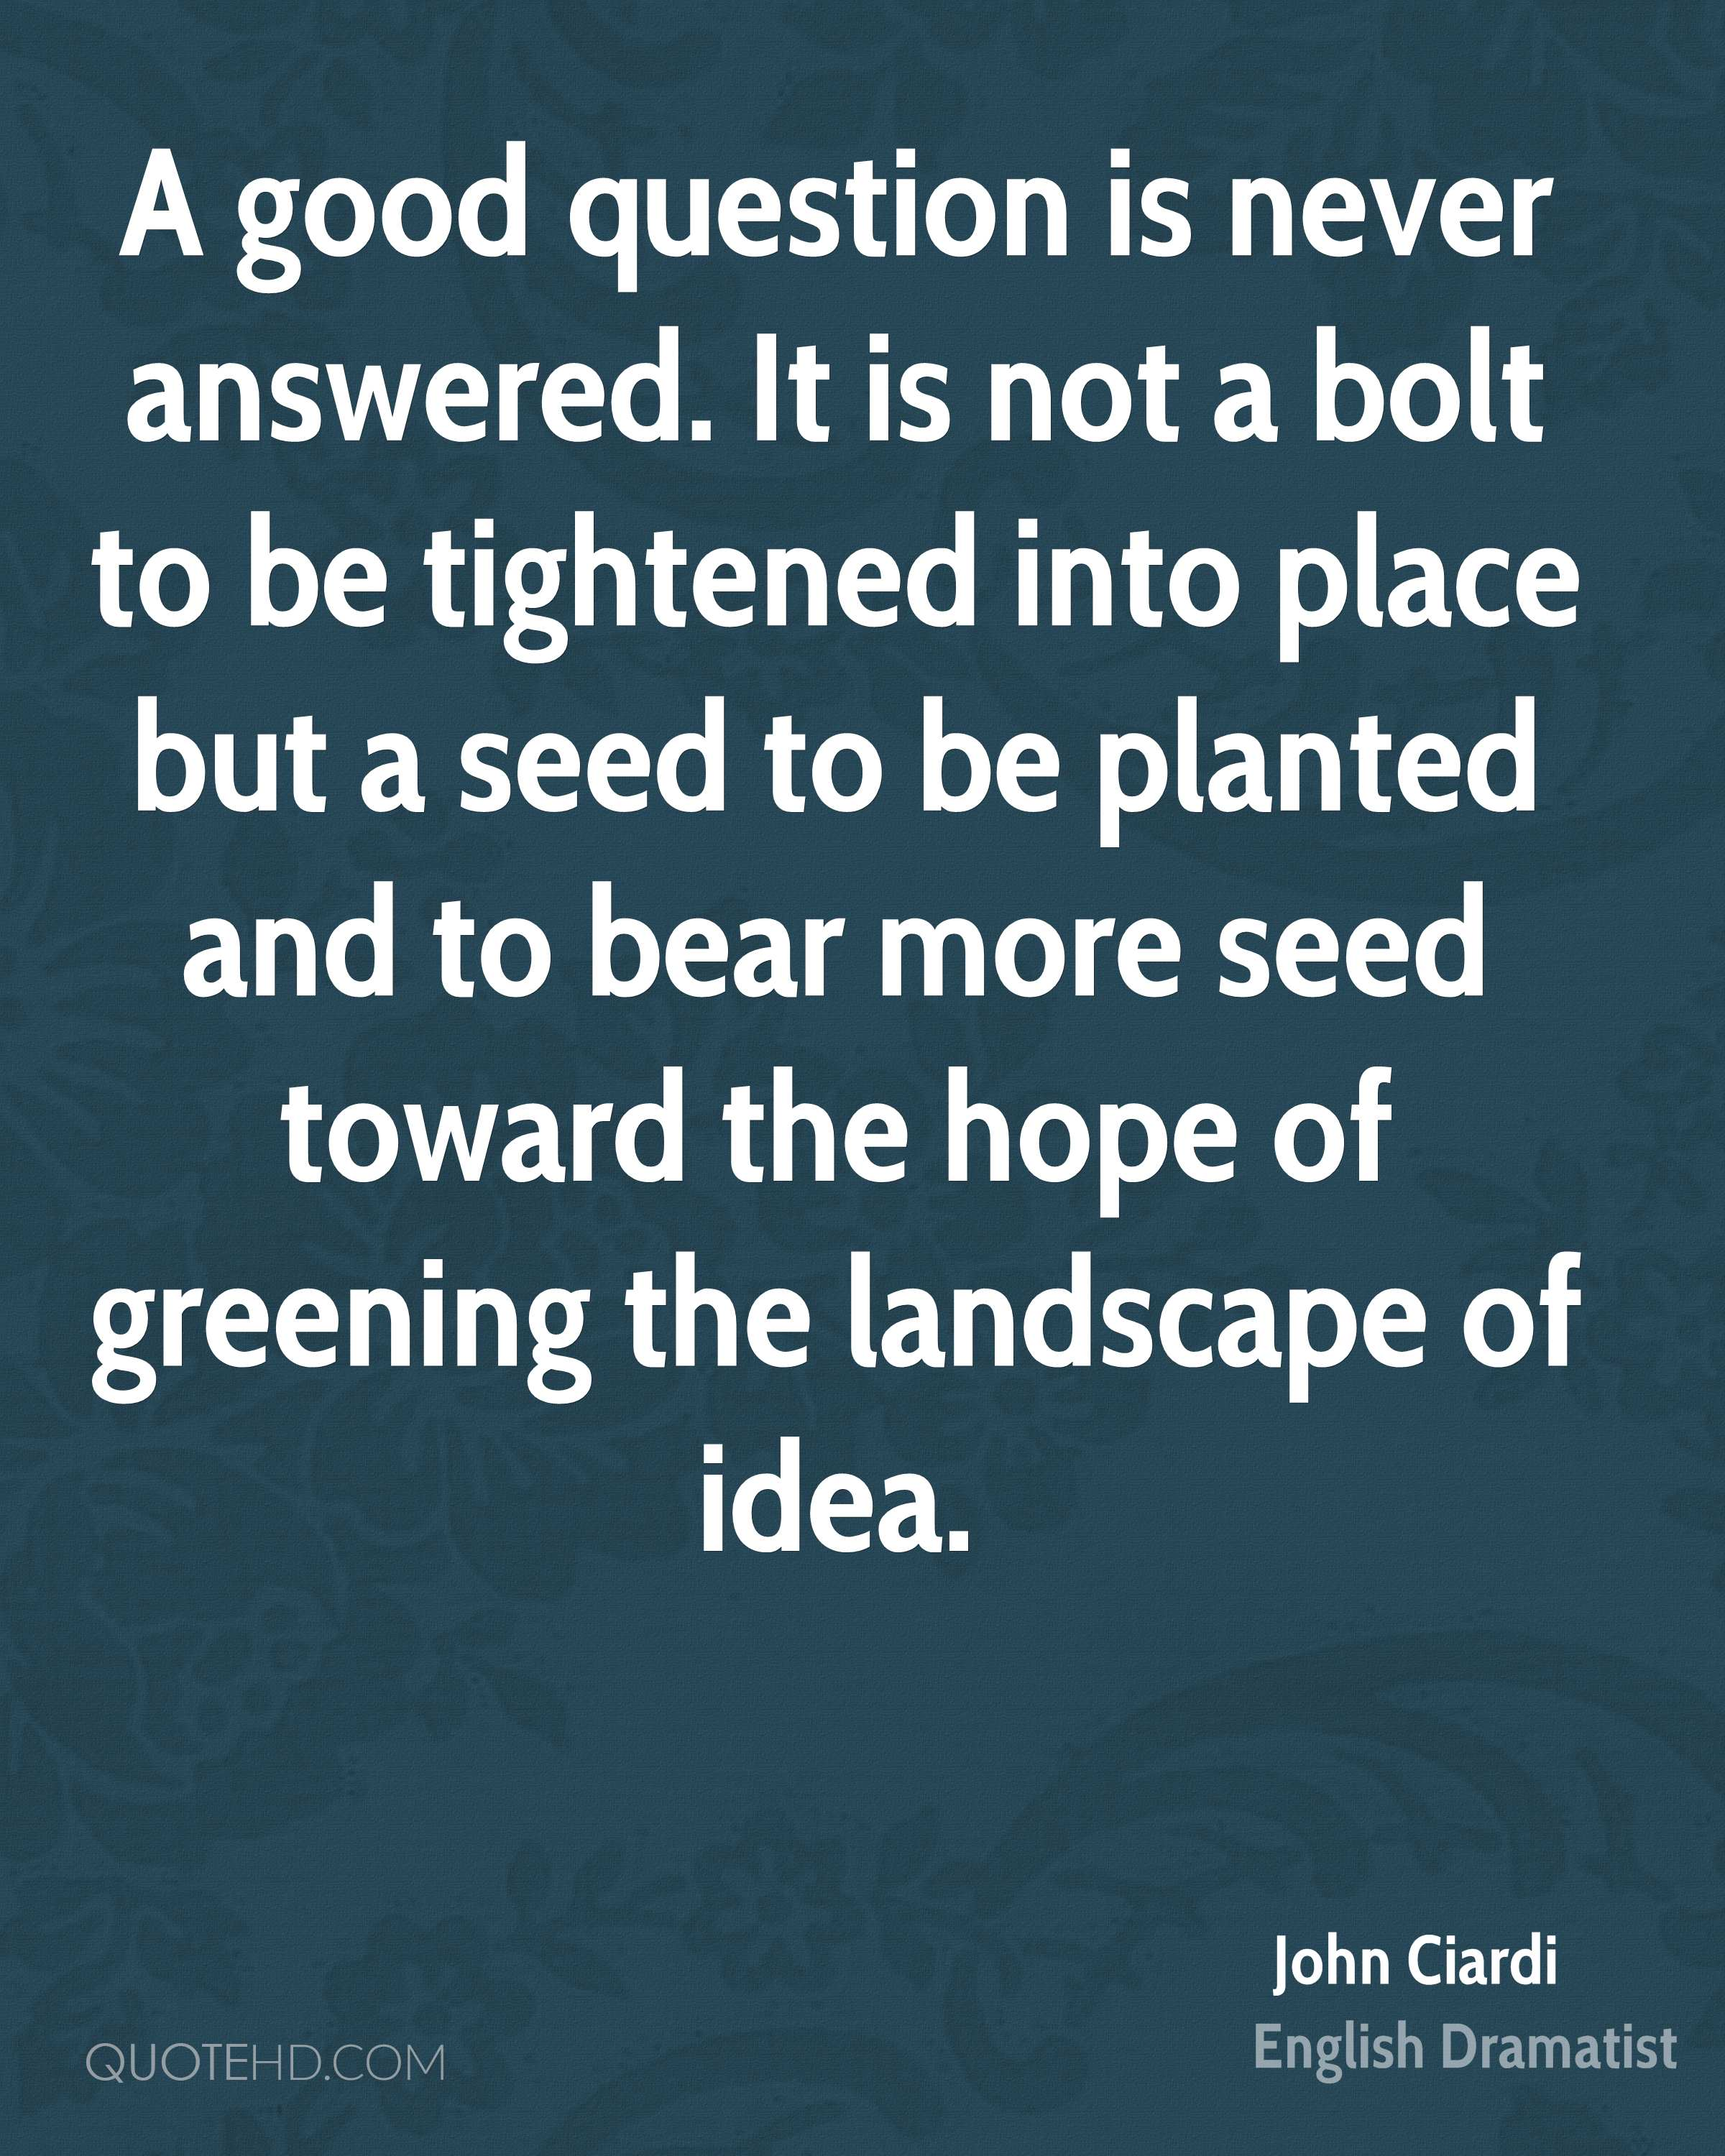 A good question is never answered. It is not a bolt to be tightened into place but a seed to be planted and to bear more seed toward the hope of greening the landscape of idea.